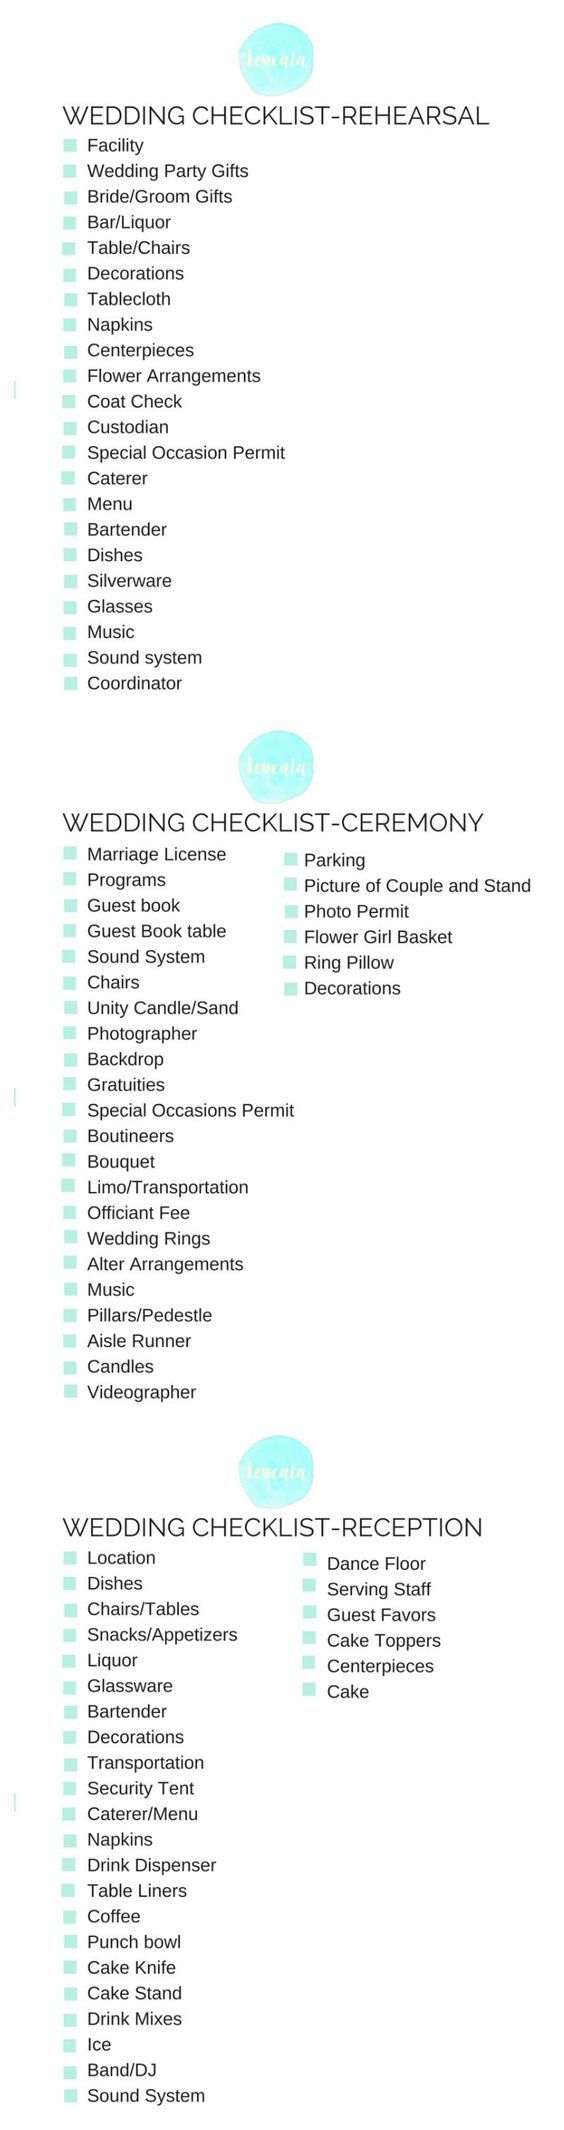 Best Wedding CoordinatingPlanning Images On